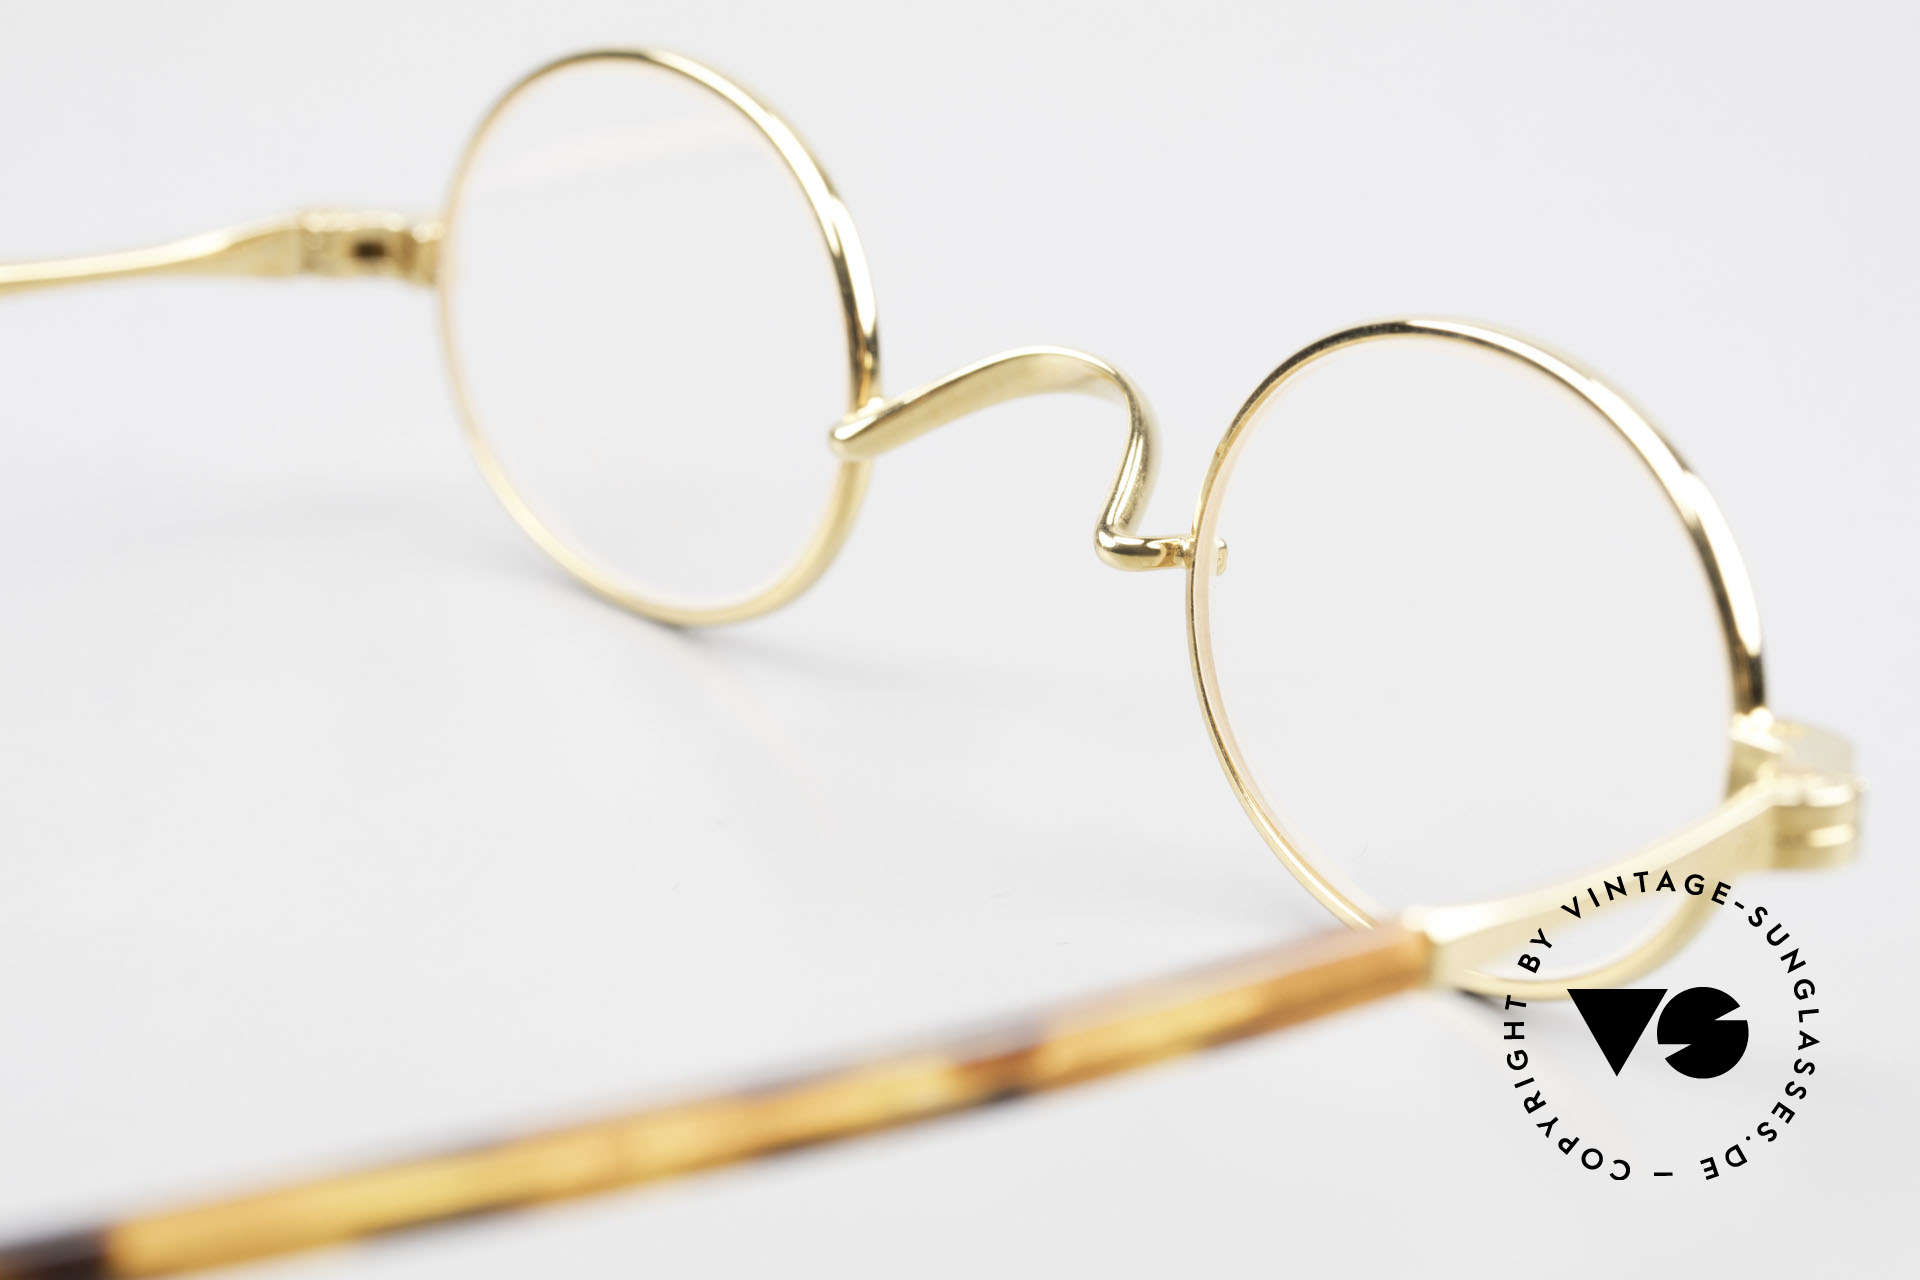 Lunor II A 04 Lunor Glasses Oval Gold Plated, Size: small, Made for Men and Women